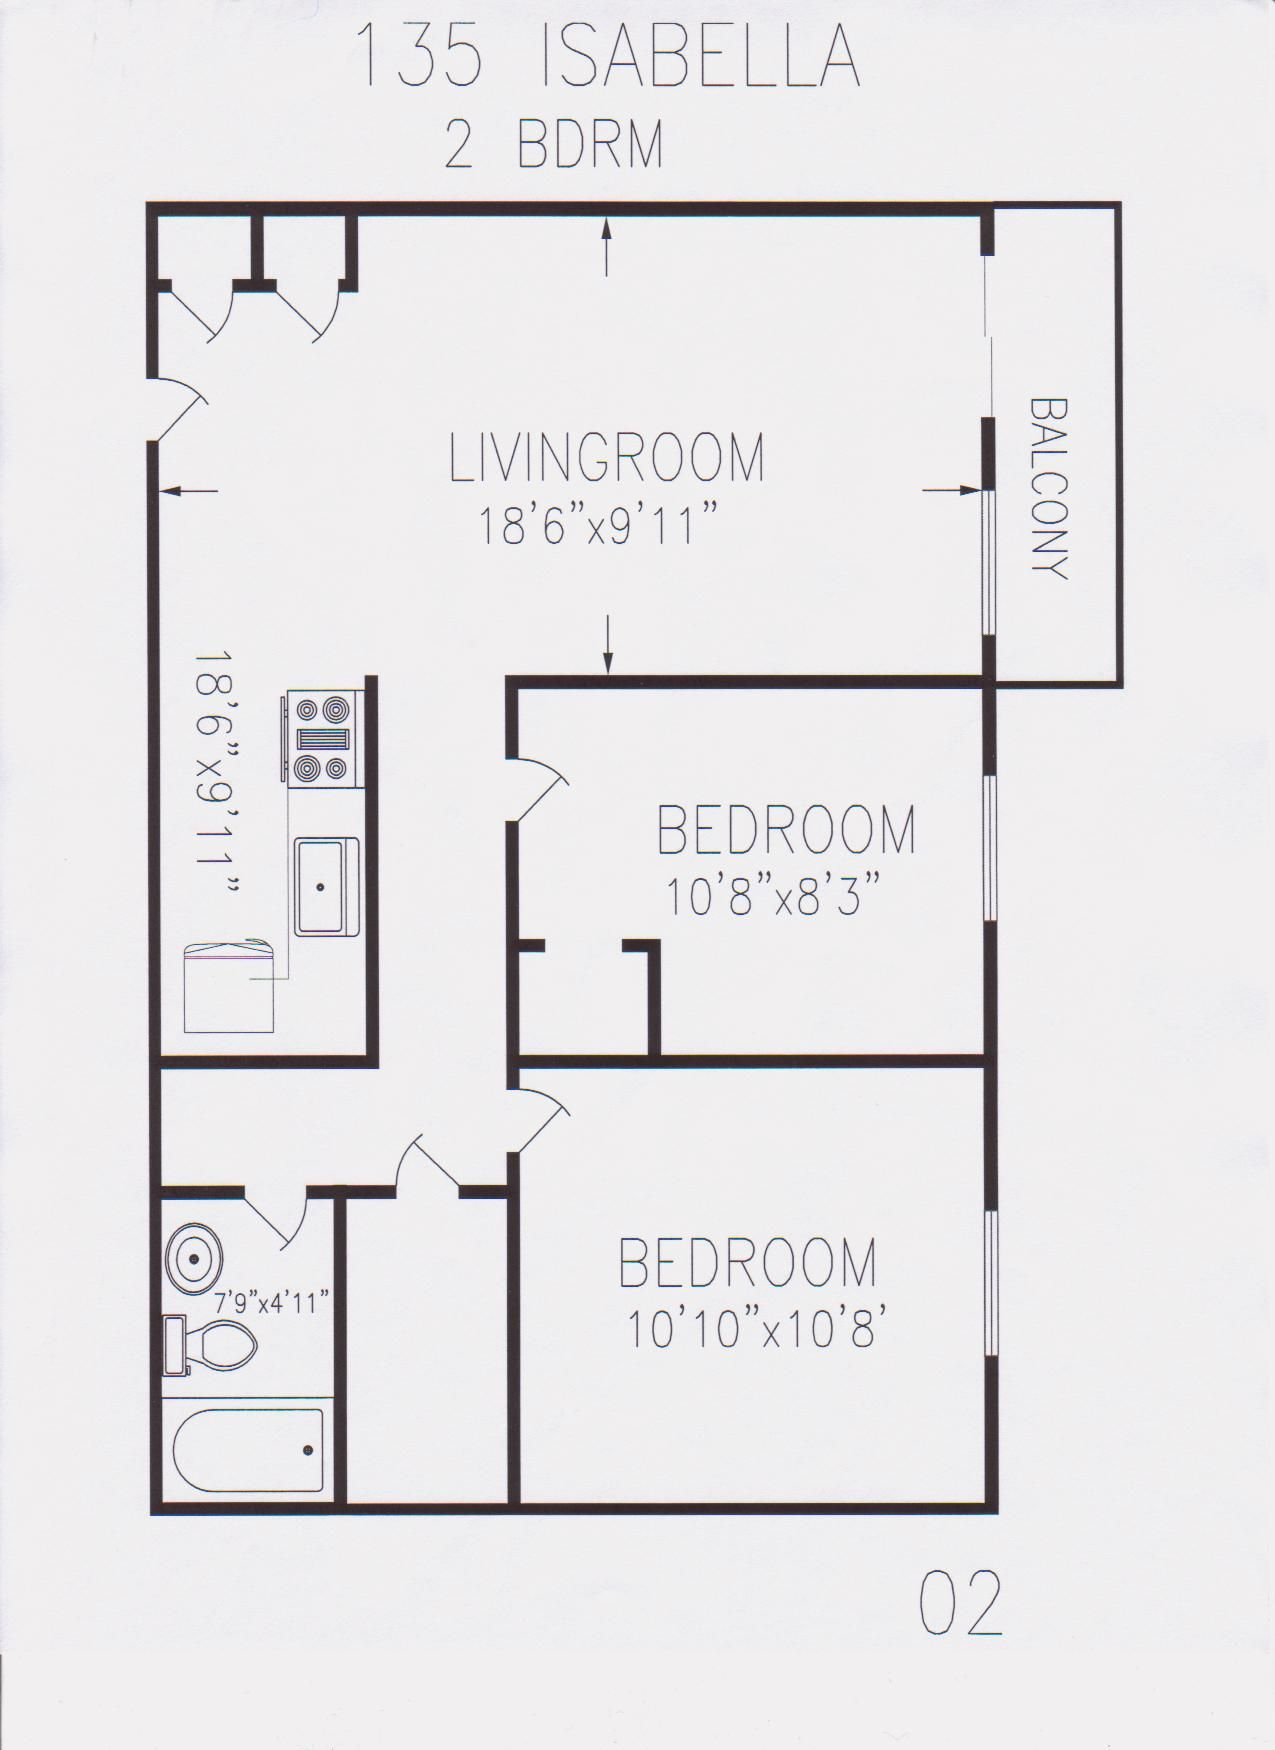 700 Sq Feet House Plan With Car Parking Small House Plans House Plans One Storey House